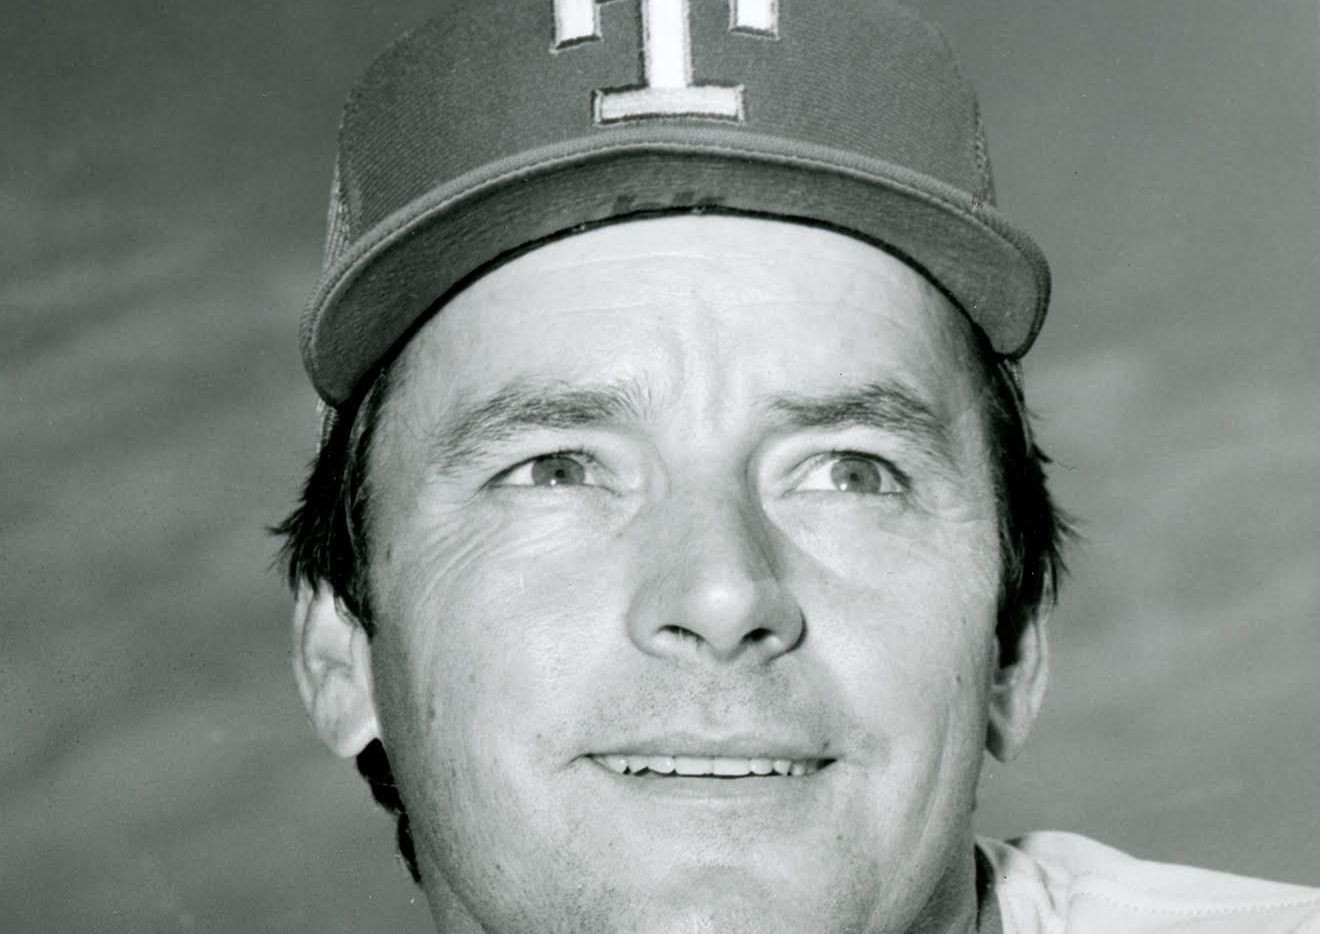 Jackie Brown, pictured in 1981 during his tenure as Texas Rangers pitching coach.